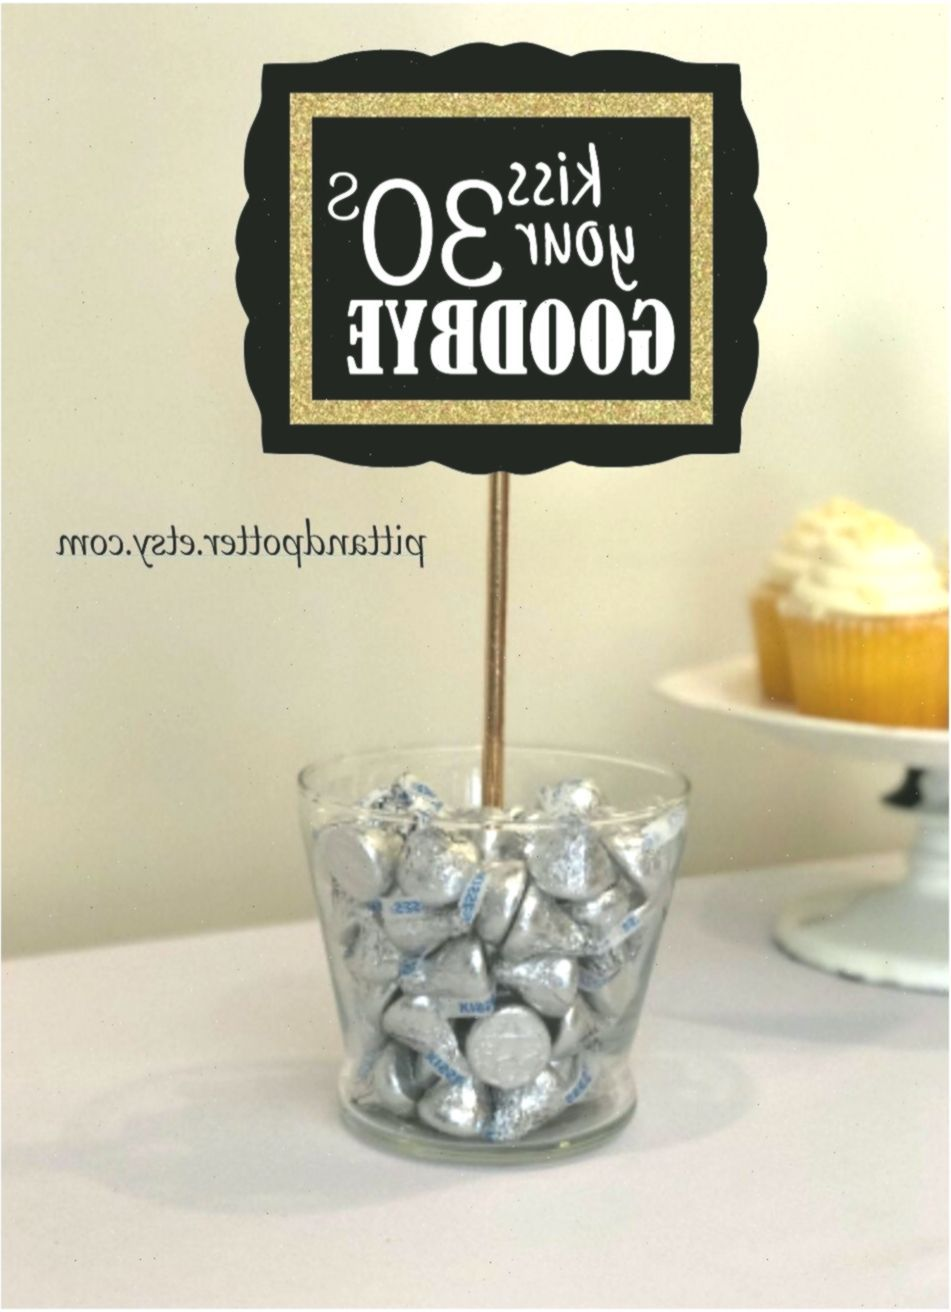 40th Birthday Ideas for Women, Kiss Your 30's Goodbye, 40th Birthday Ideas #Mittelstcke #birthdayCenterpieces #40thbirthdayideasforwomen 40th Birthday Ideas for Women, Kiss Your 30's Goodbye, 40th Birthday Ideas #Mittelstcke #birthdayCenterpieces #40thbirthdayideasforwomen